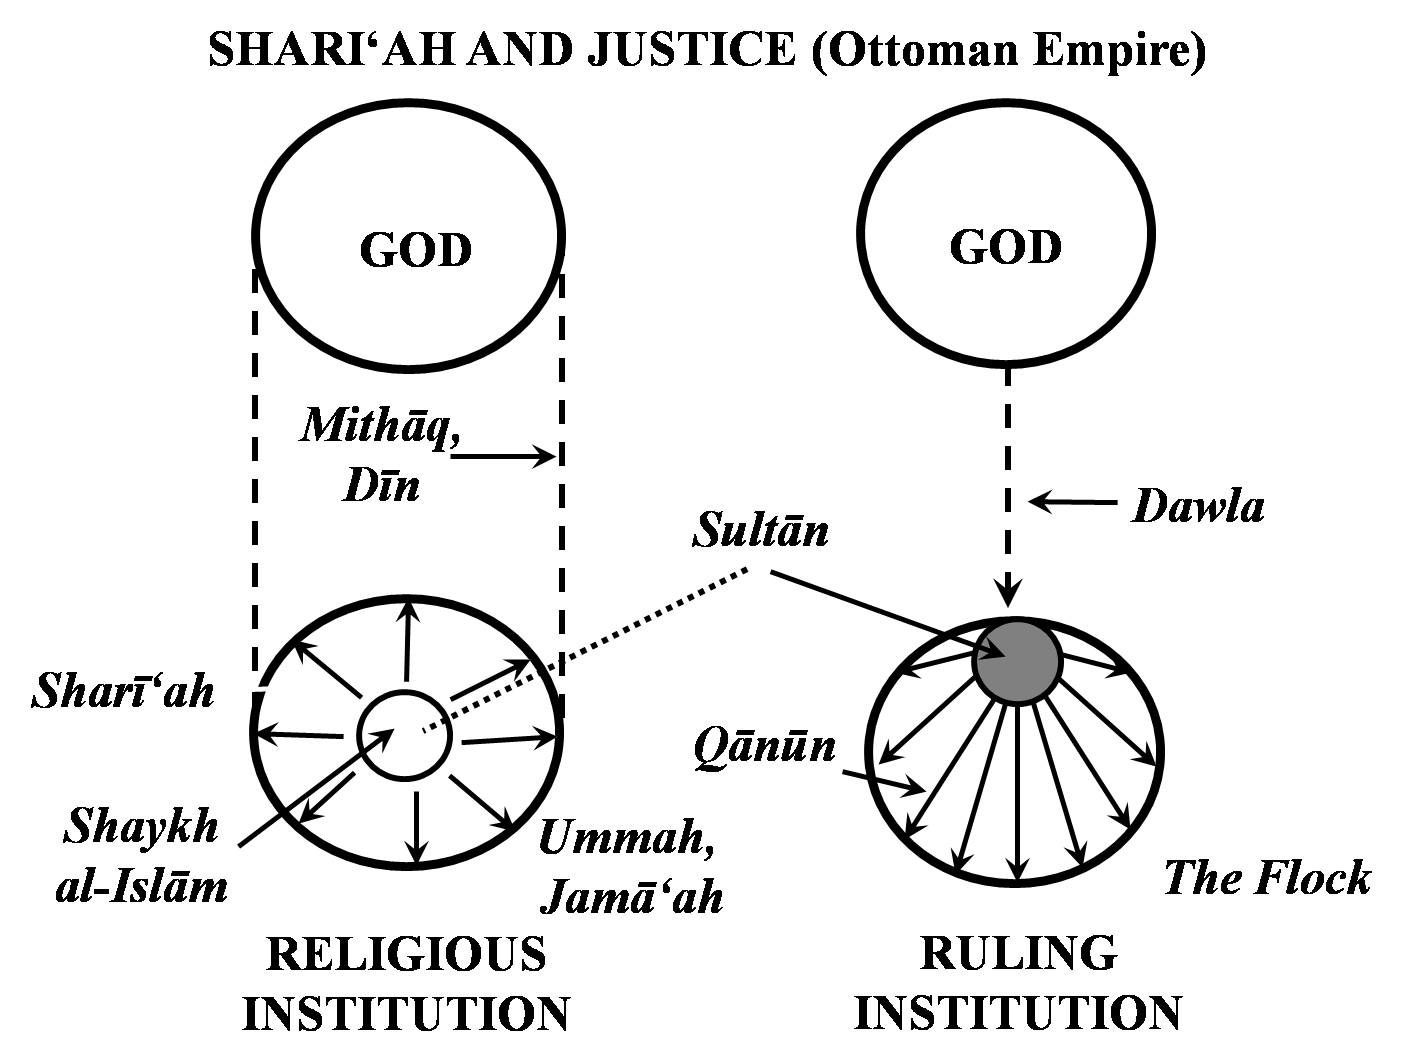 rulership and justice islamic period john woods sharauml ah and justice in the ott empire